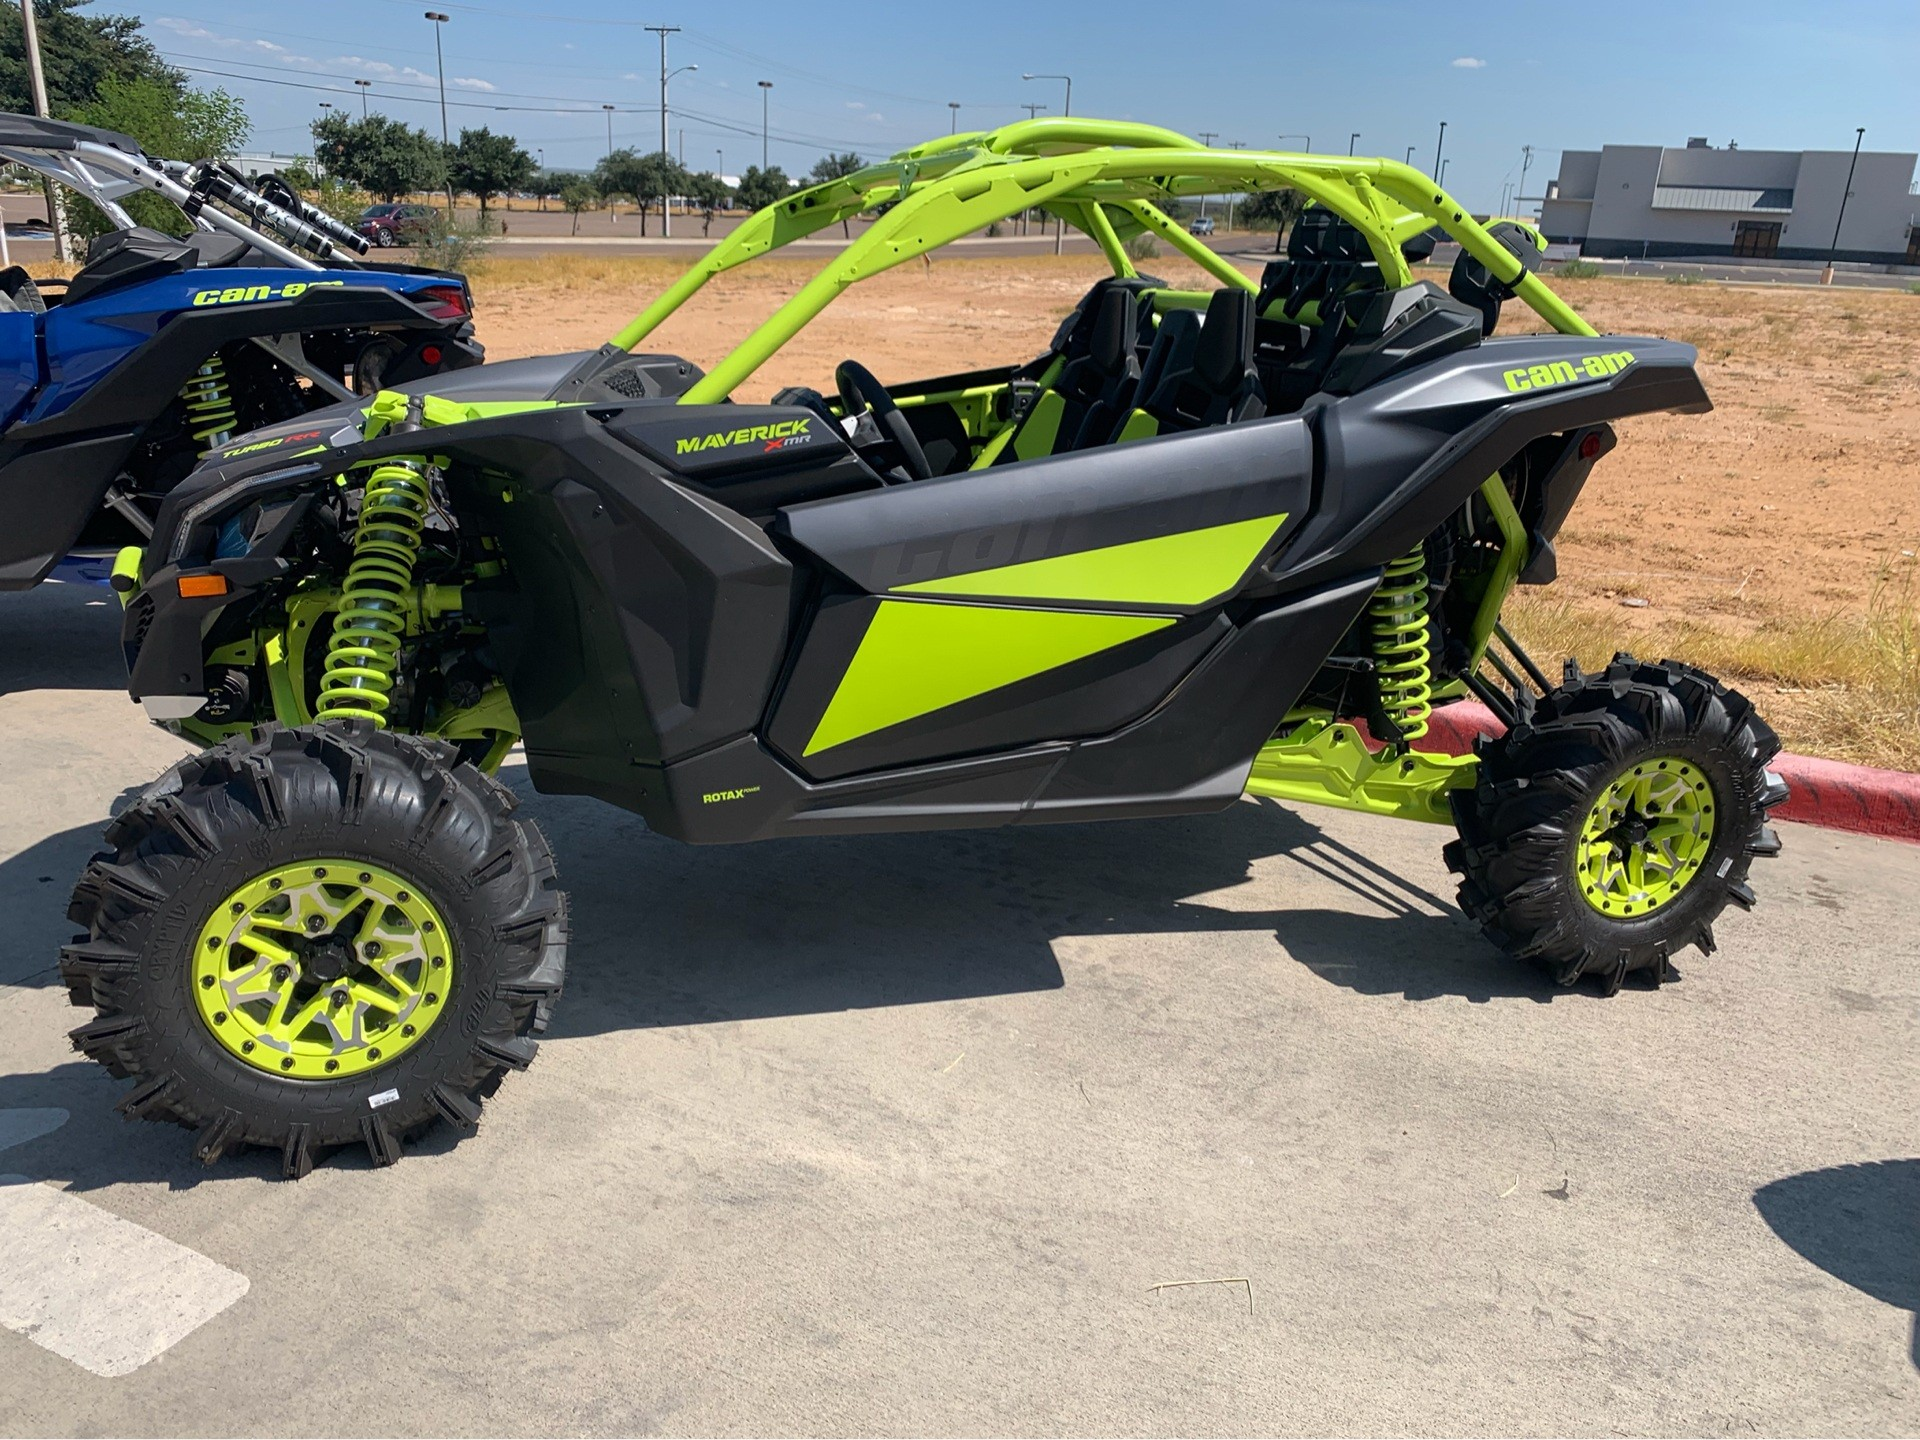 2020 Can-Am Maverick X3 X MR Turbo RR in Laredo, Texas - Photo 1